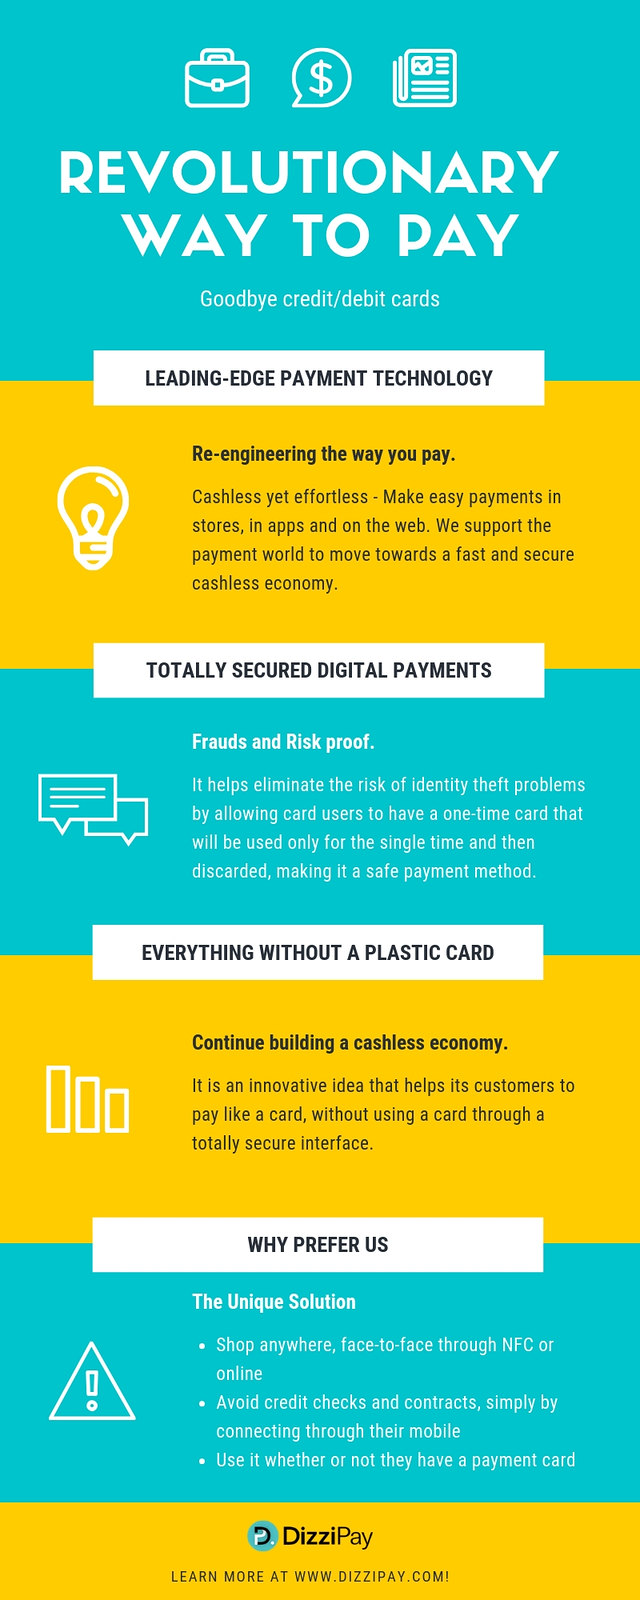 Everything You Have To Know About DizziPay Secure Digital Payments Solution